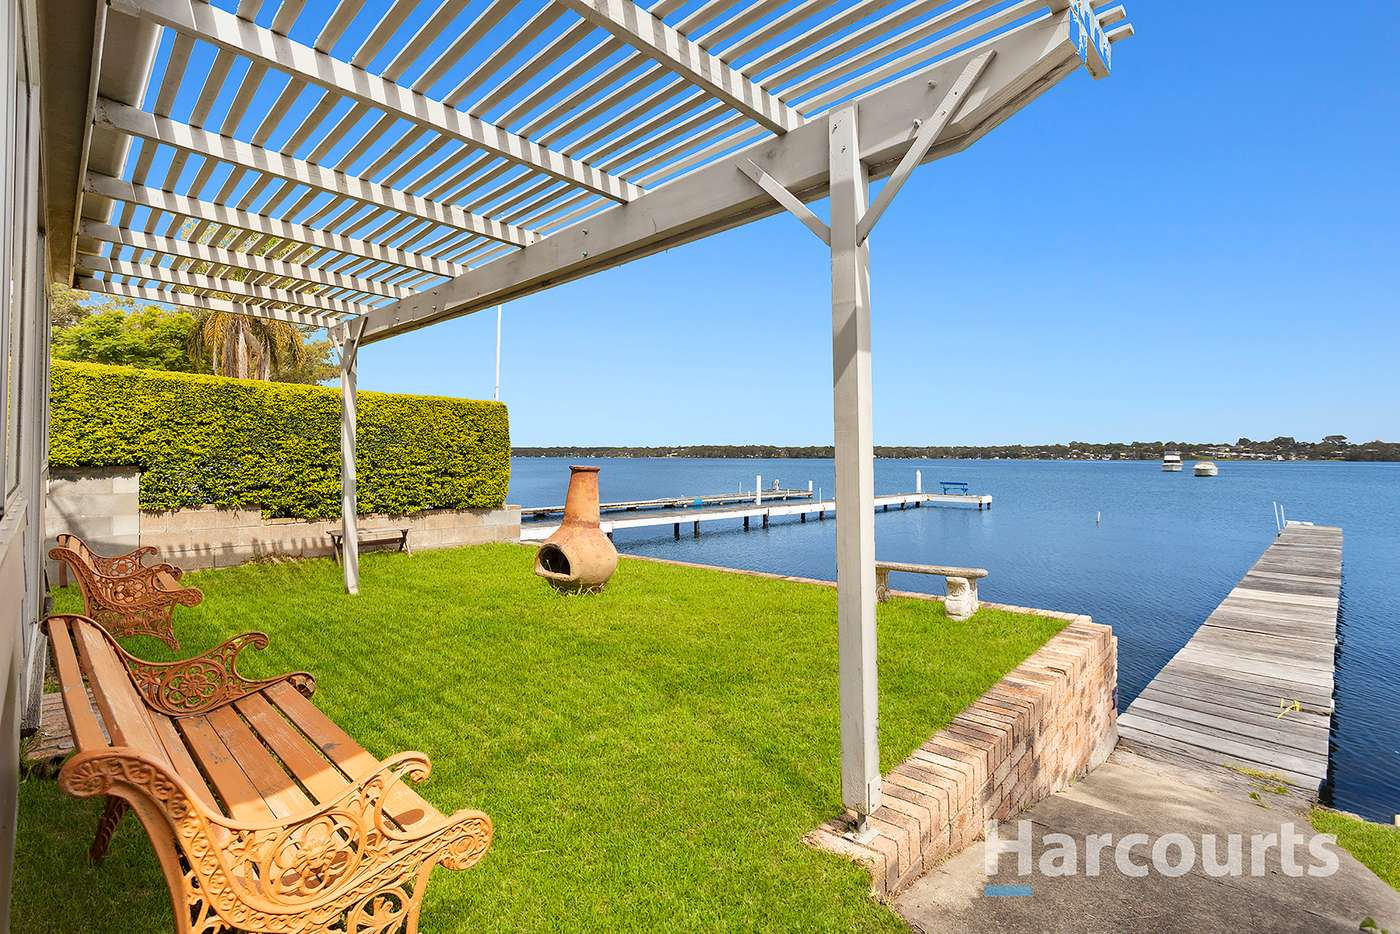 Main view of Homely house listing, 54 Marine Parade, Nords Wharf NSW 2281